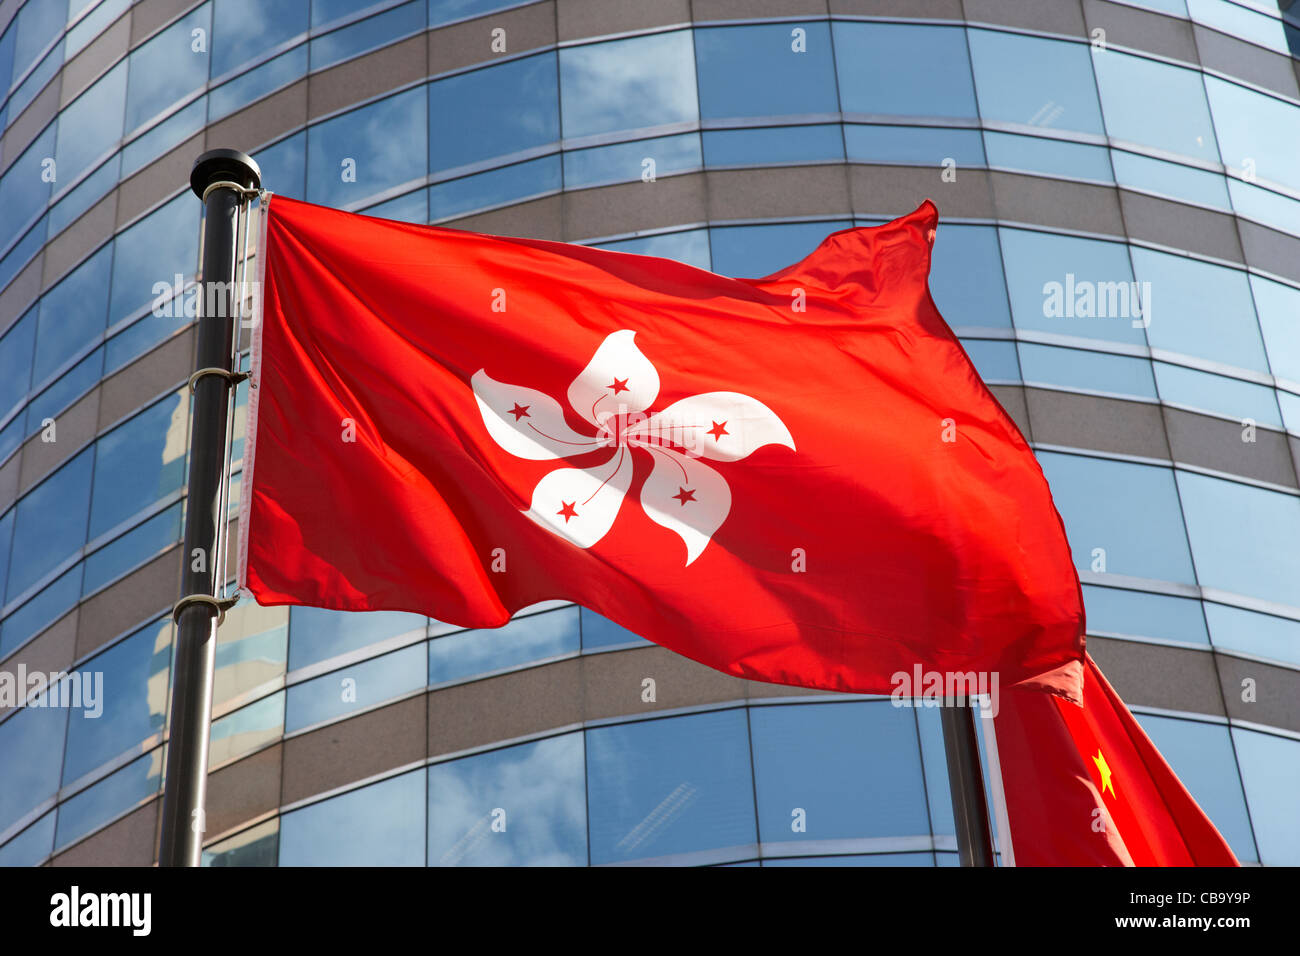 hong kong flag flying in front of office building exchange square hong kong hksar china - Stock Image